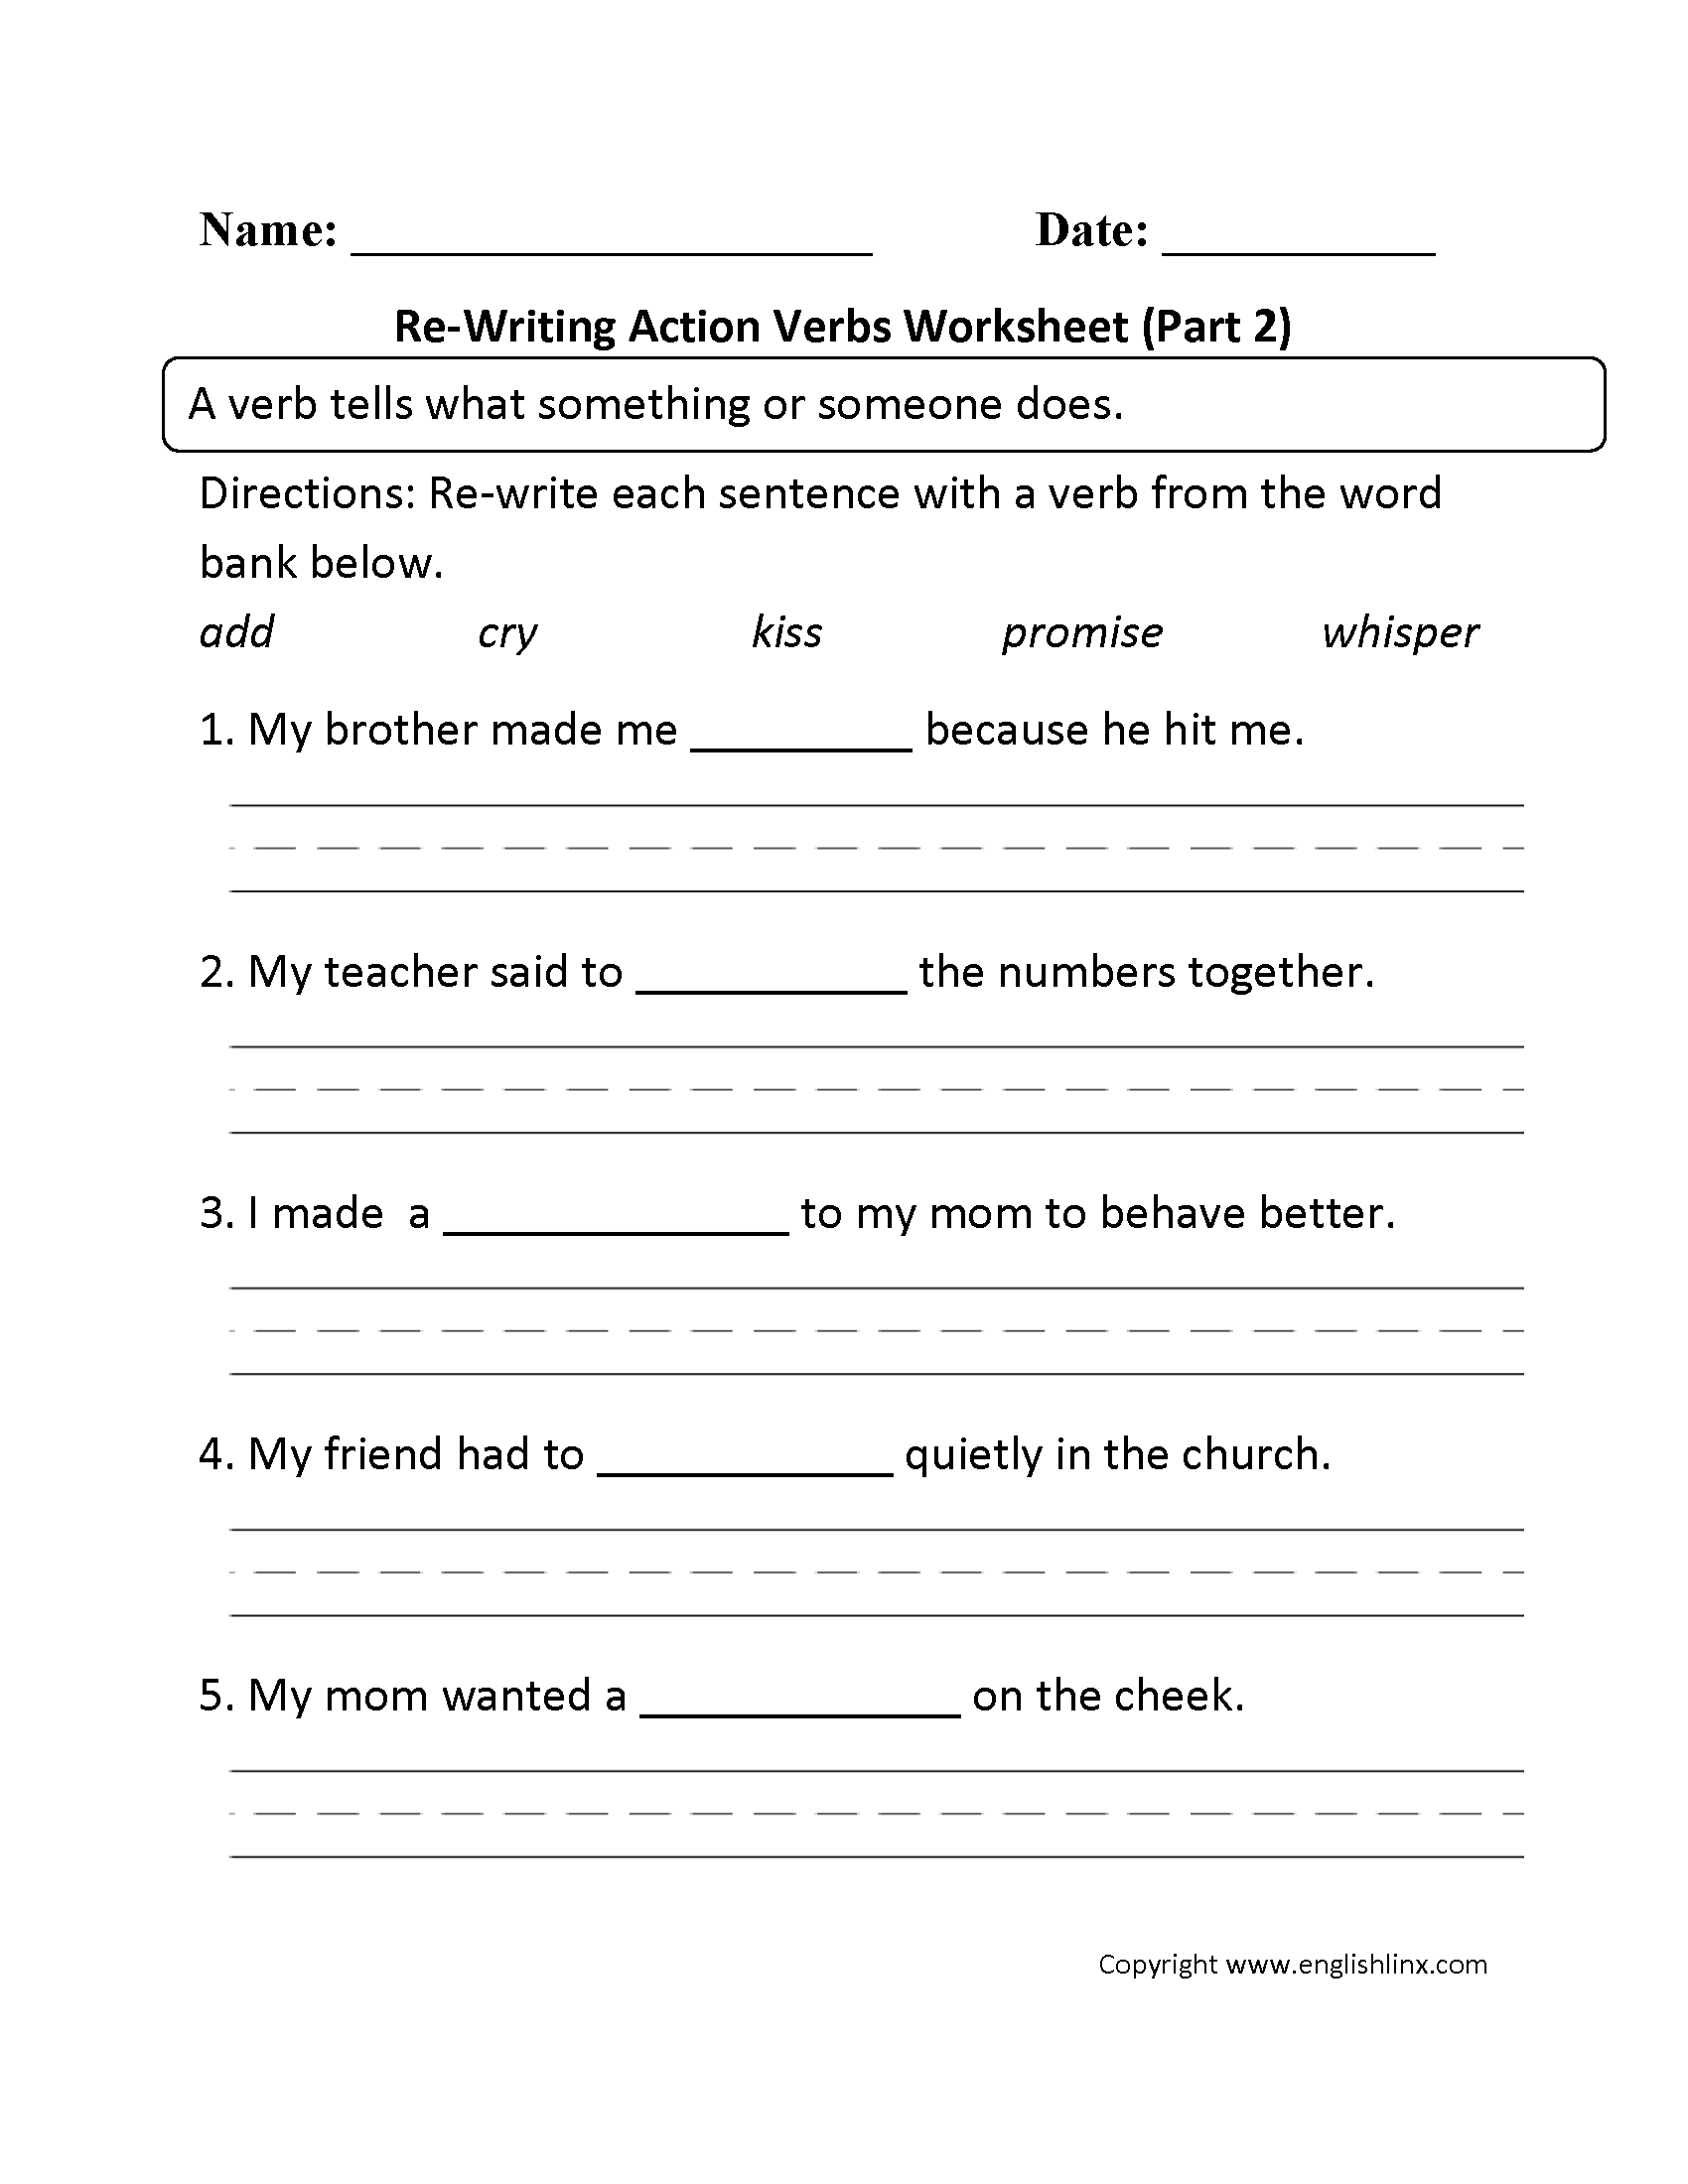 Worksheets Verb Worksheets 5th Grade verbs worksheets action worksheet part 2